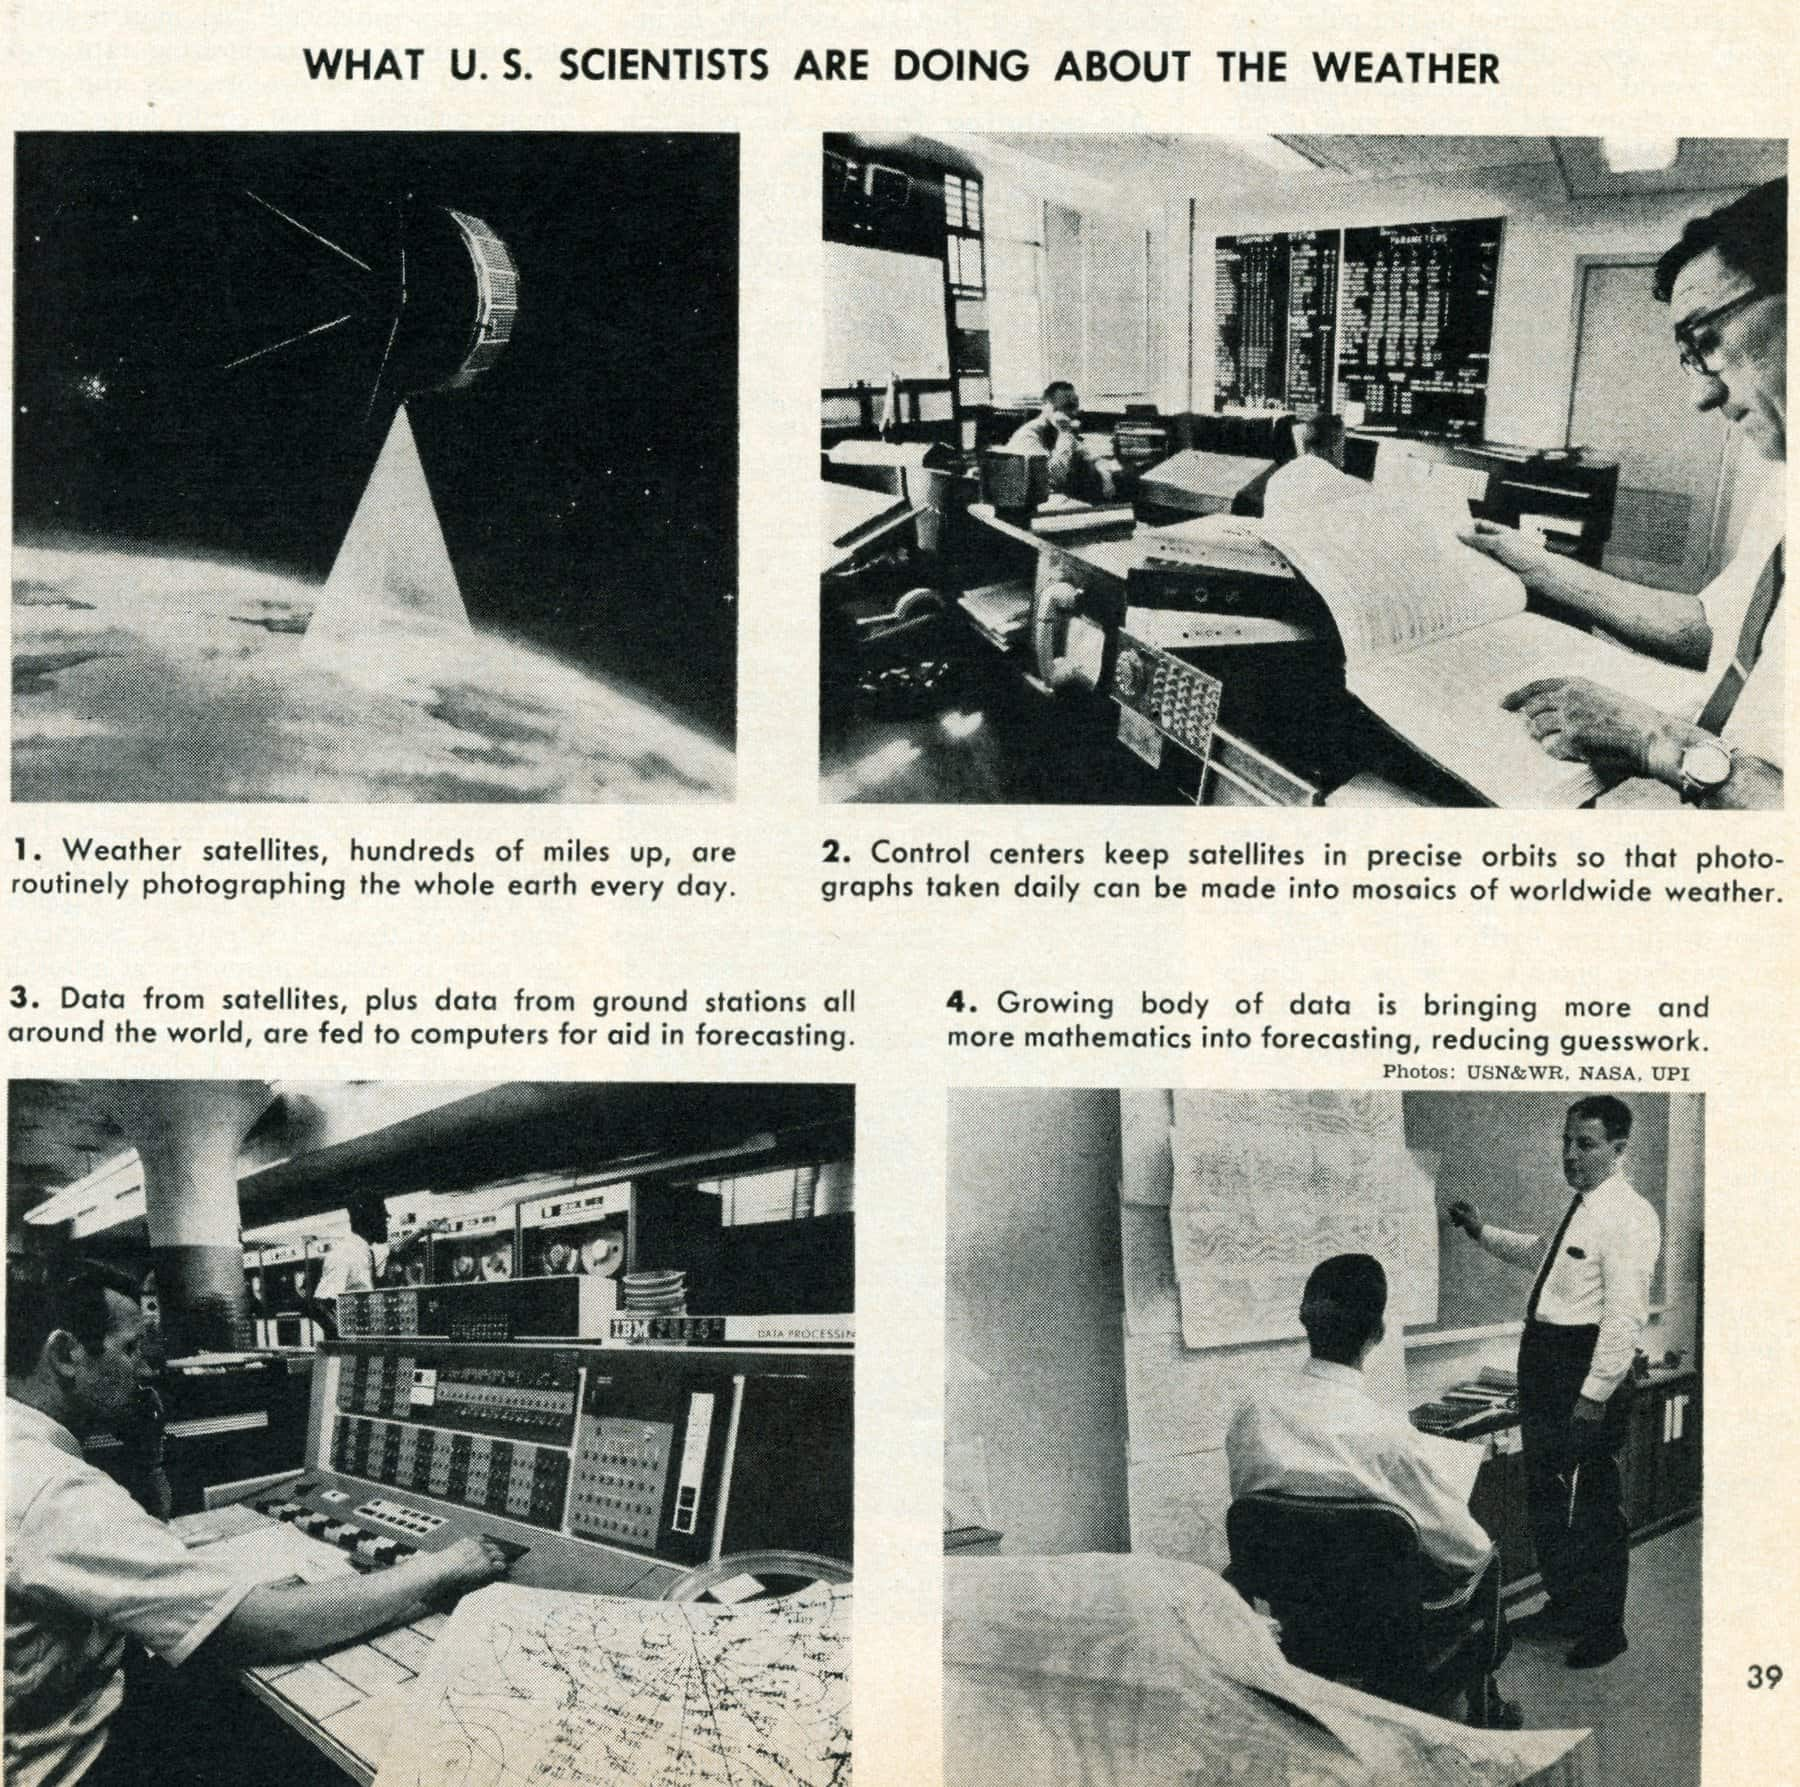 How US scientists are using computers to help with the weather (1967)